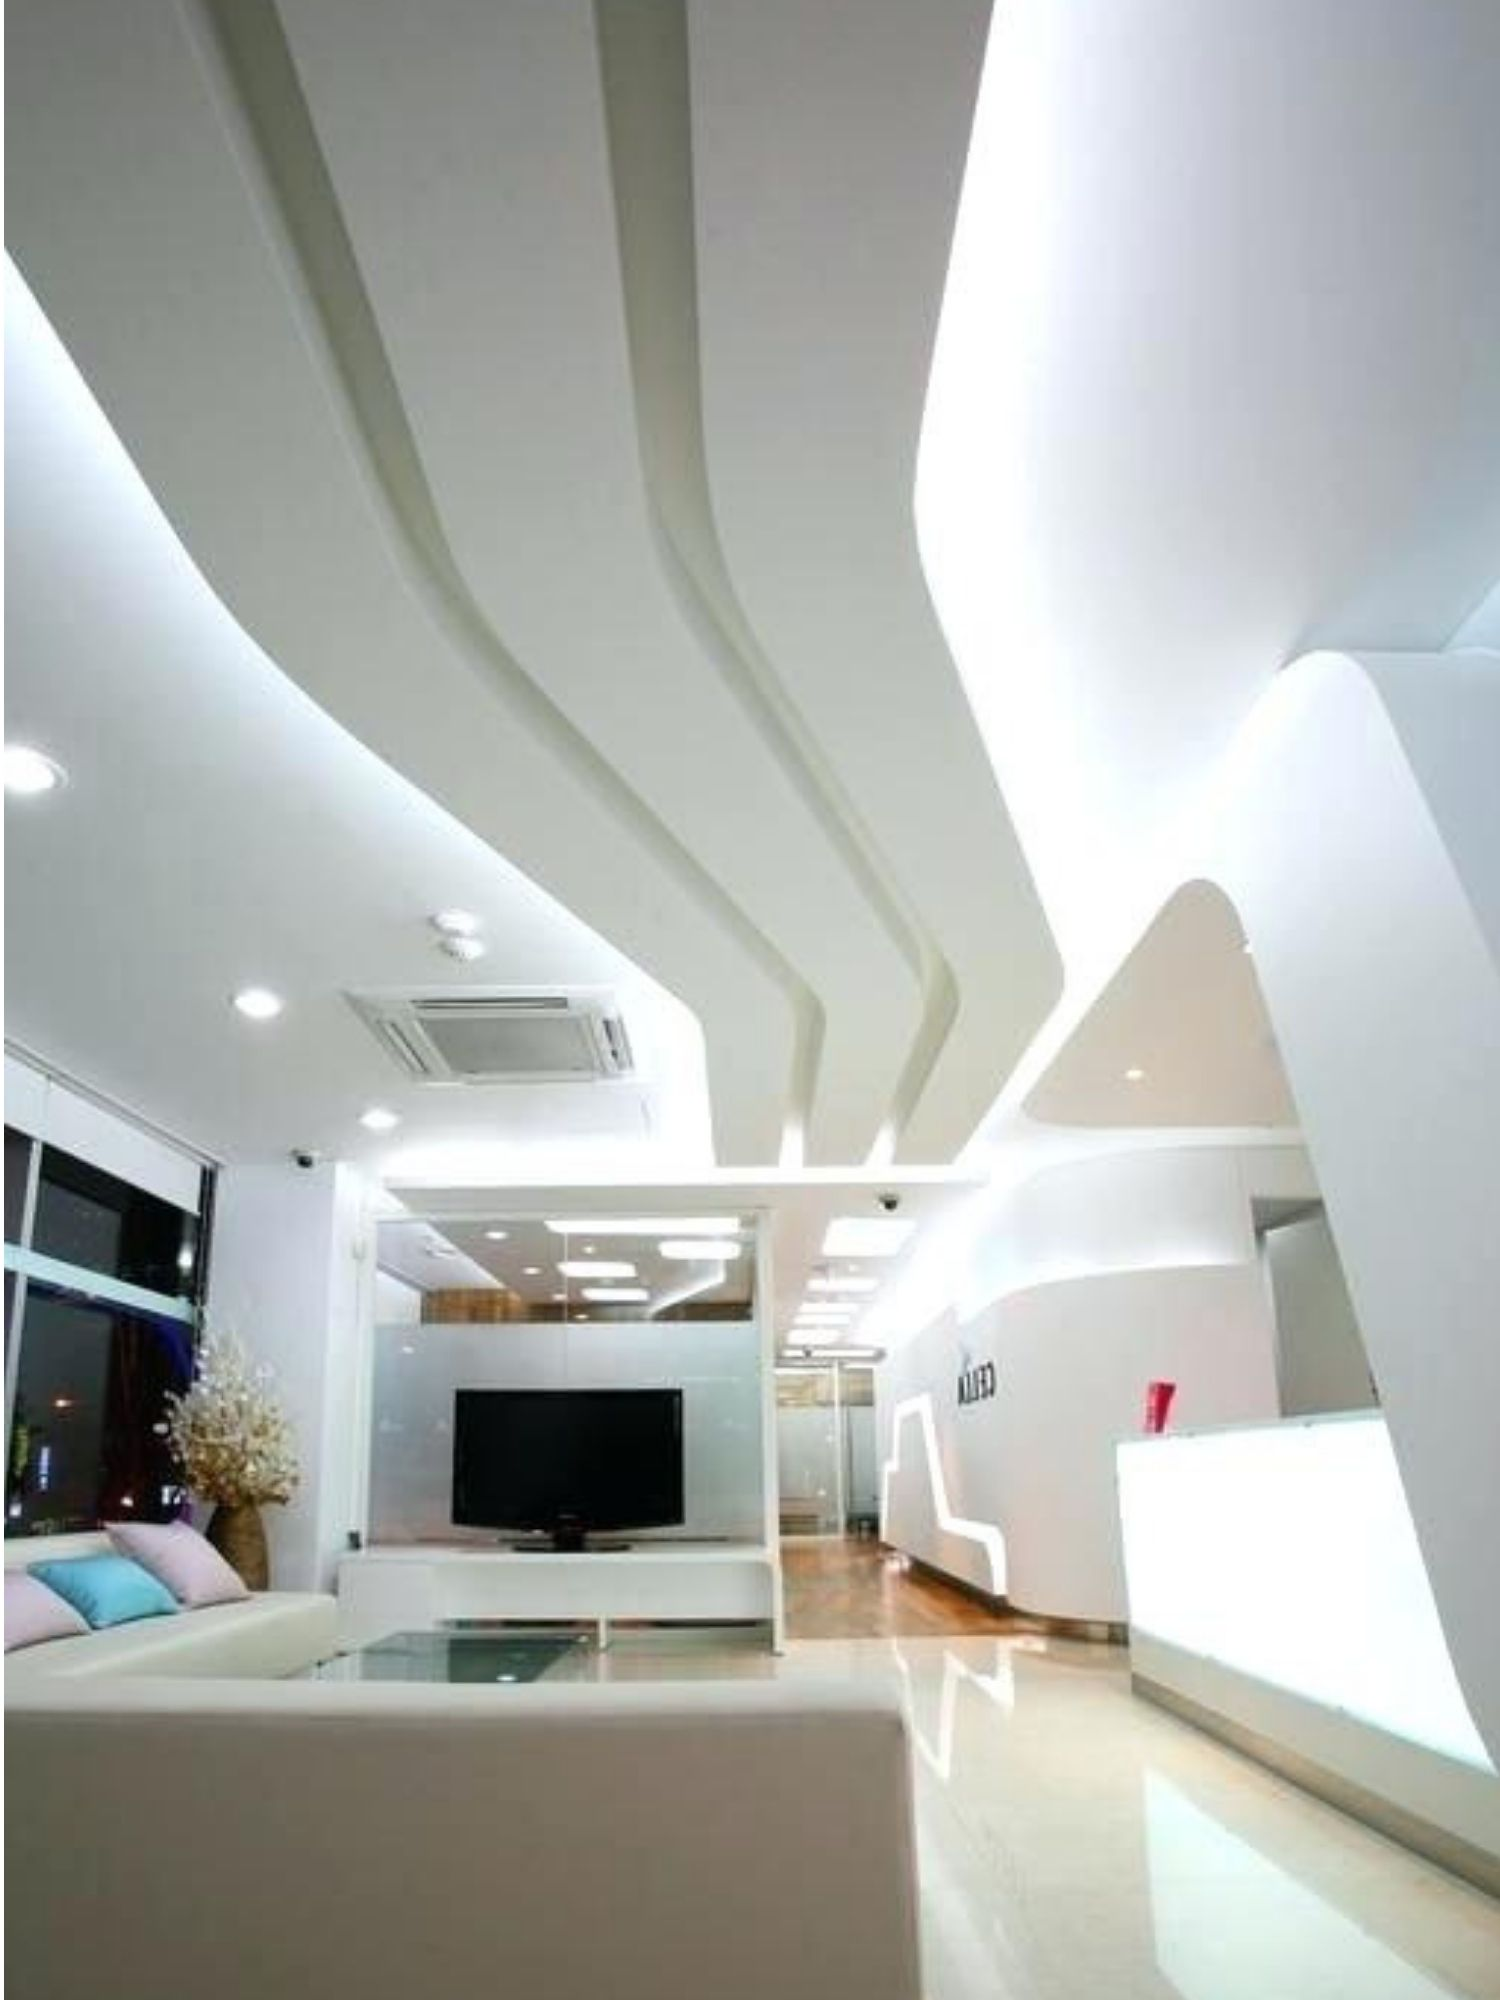 Ideas That Are Creative Modern Interior Design Concepts To Add To Your Own Home 747 Moderninteriordesign Design Interiordesign Modern Interior Modern House Design Modern Interior Design